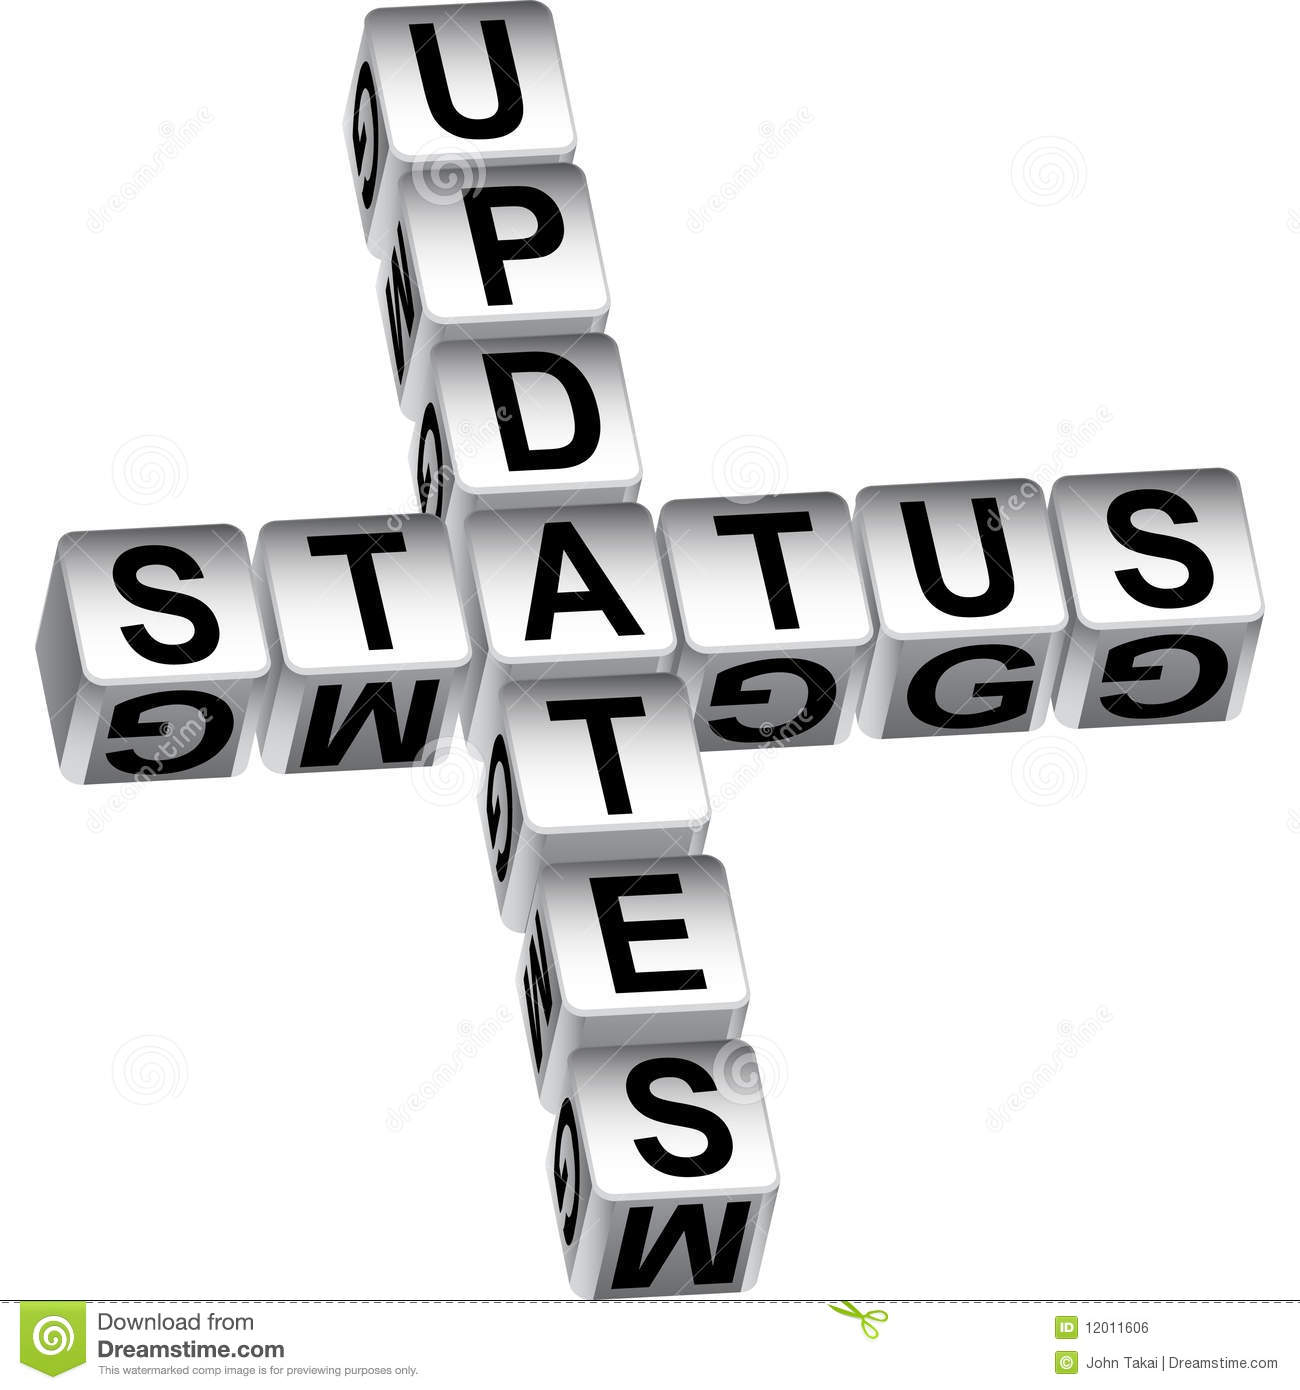 ... Status Update Dice Message Royalty Free Stock Image - Image: 12011606